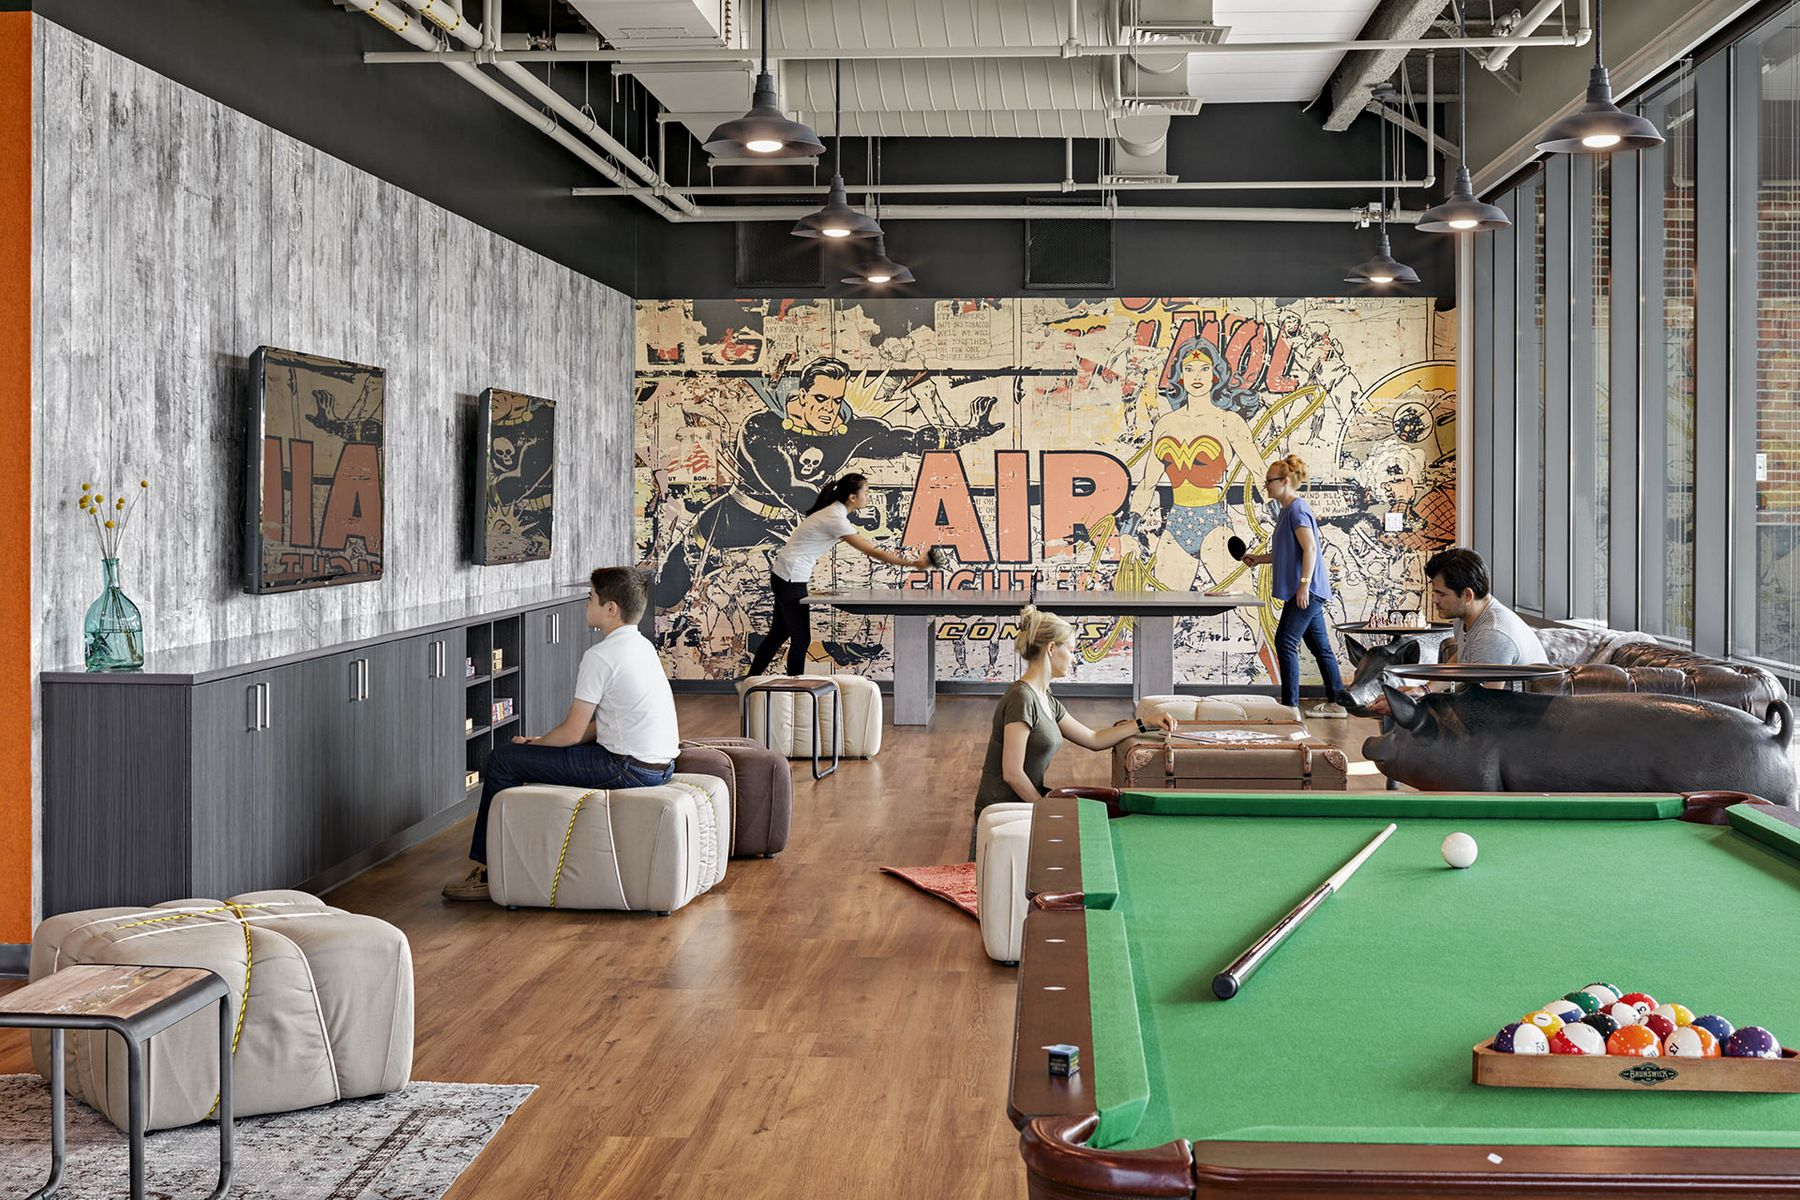 Game Room in the TripAdvisor HQ Offices